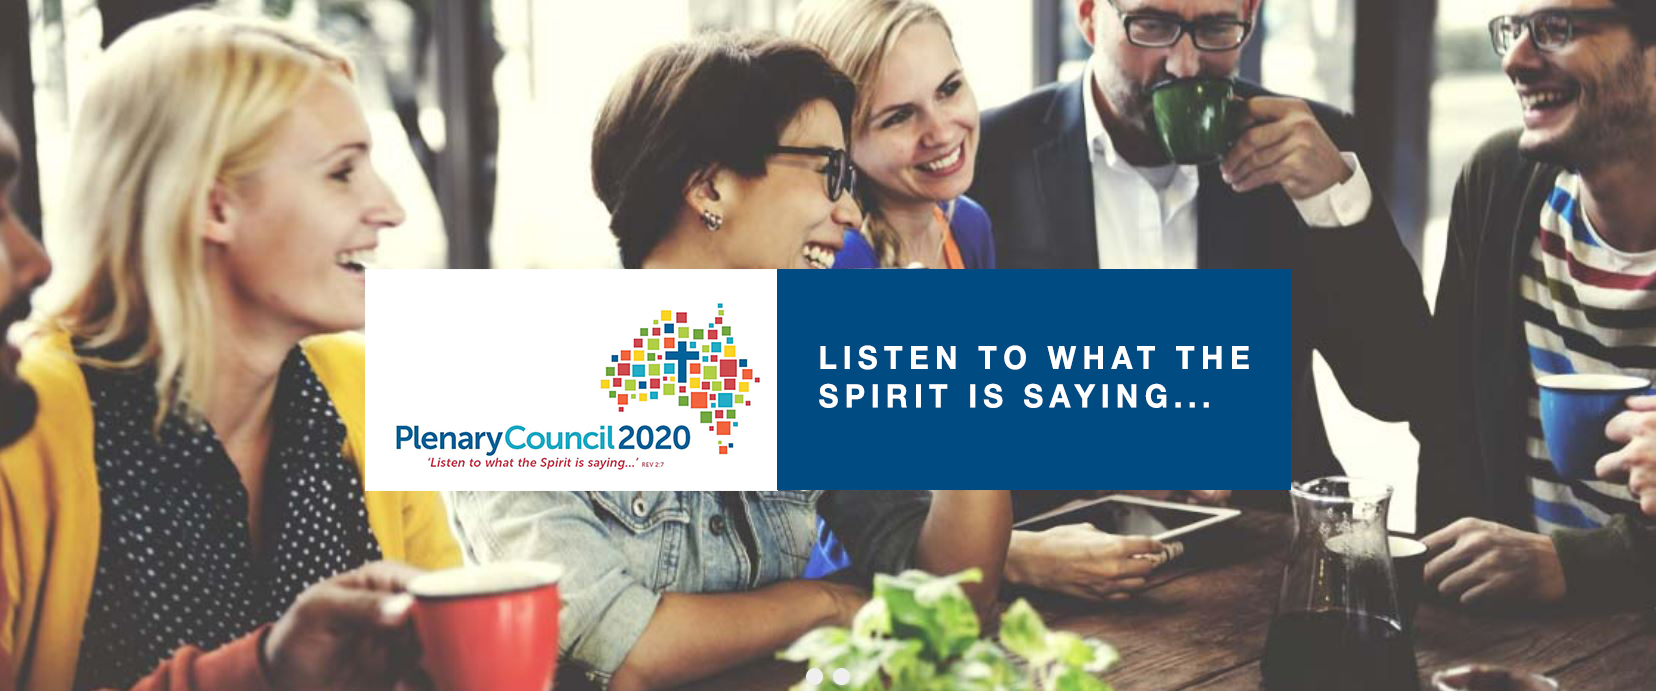 plenary-council-web-banner-01